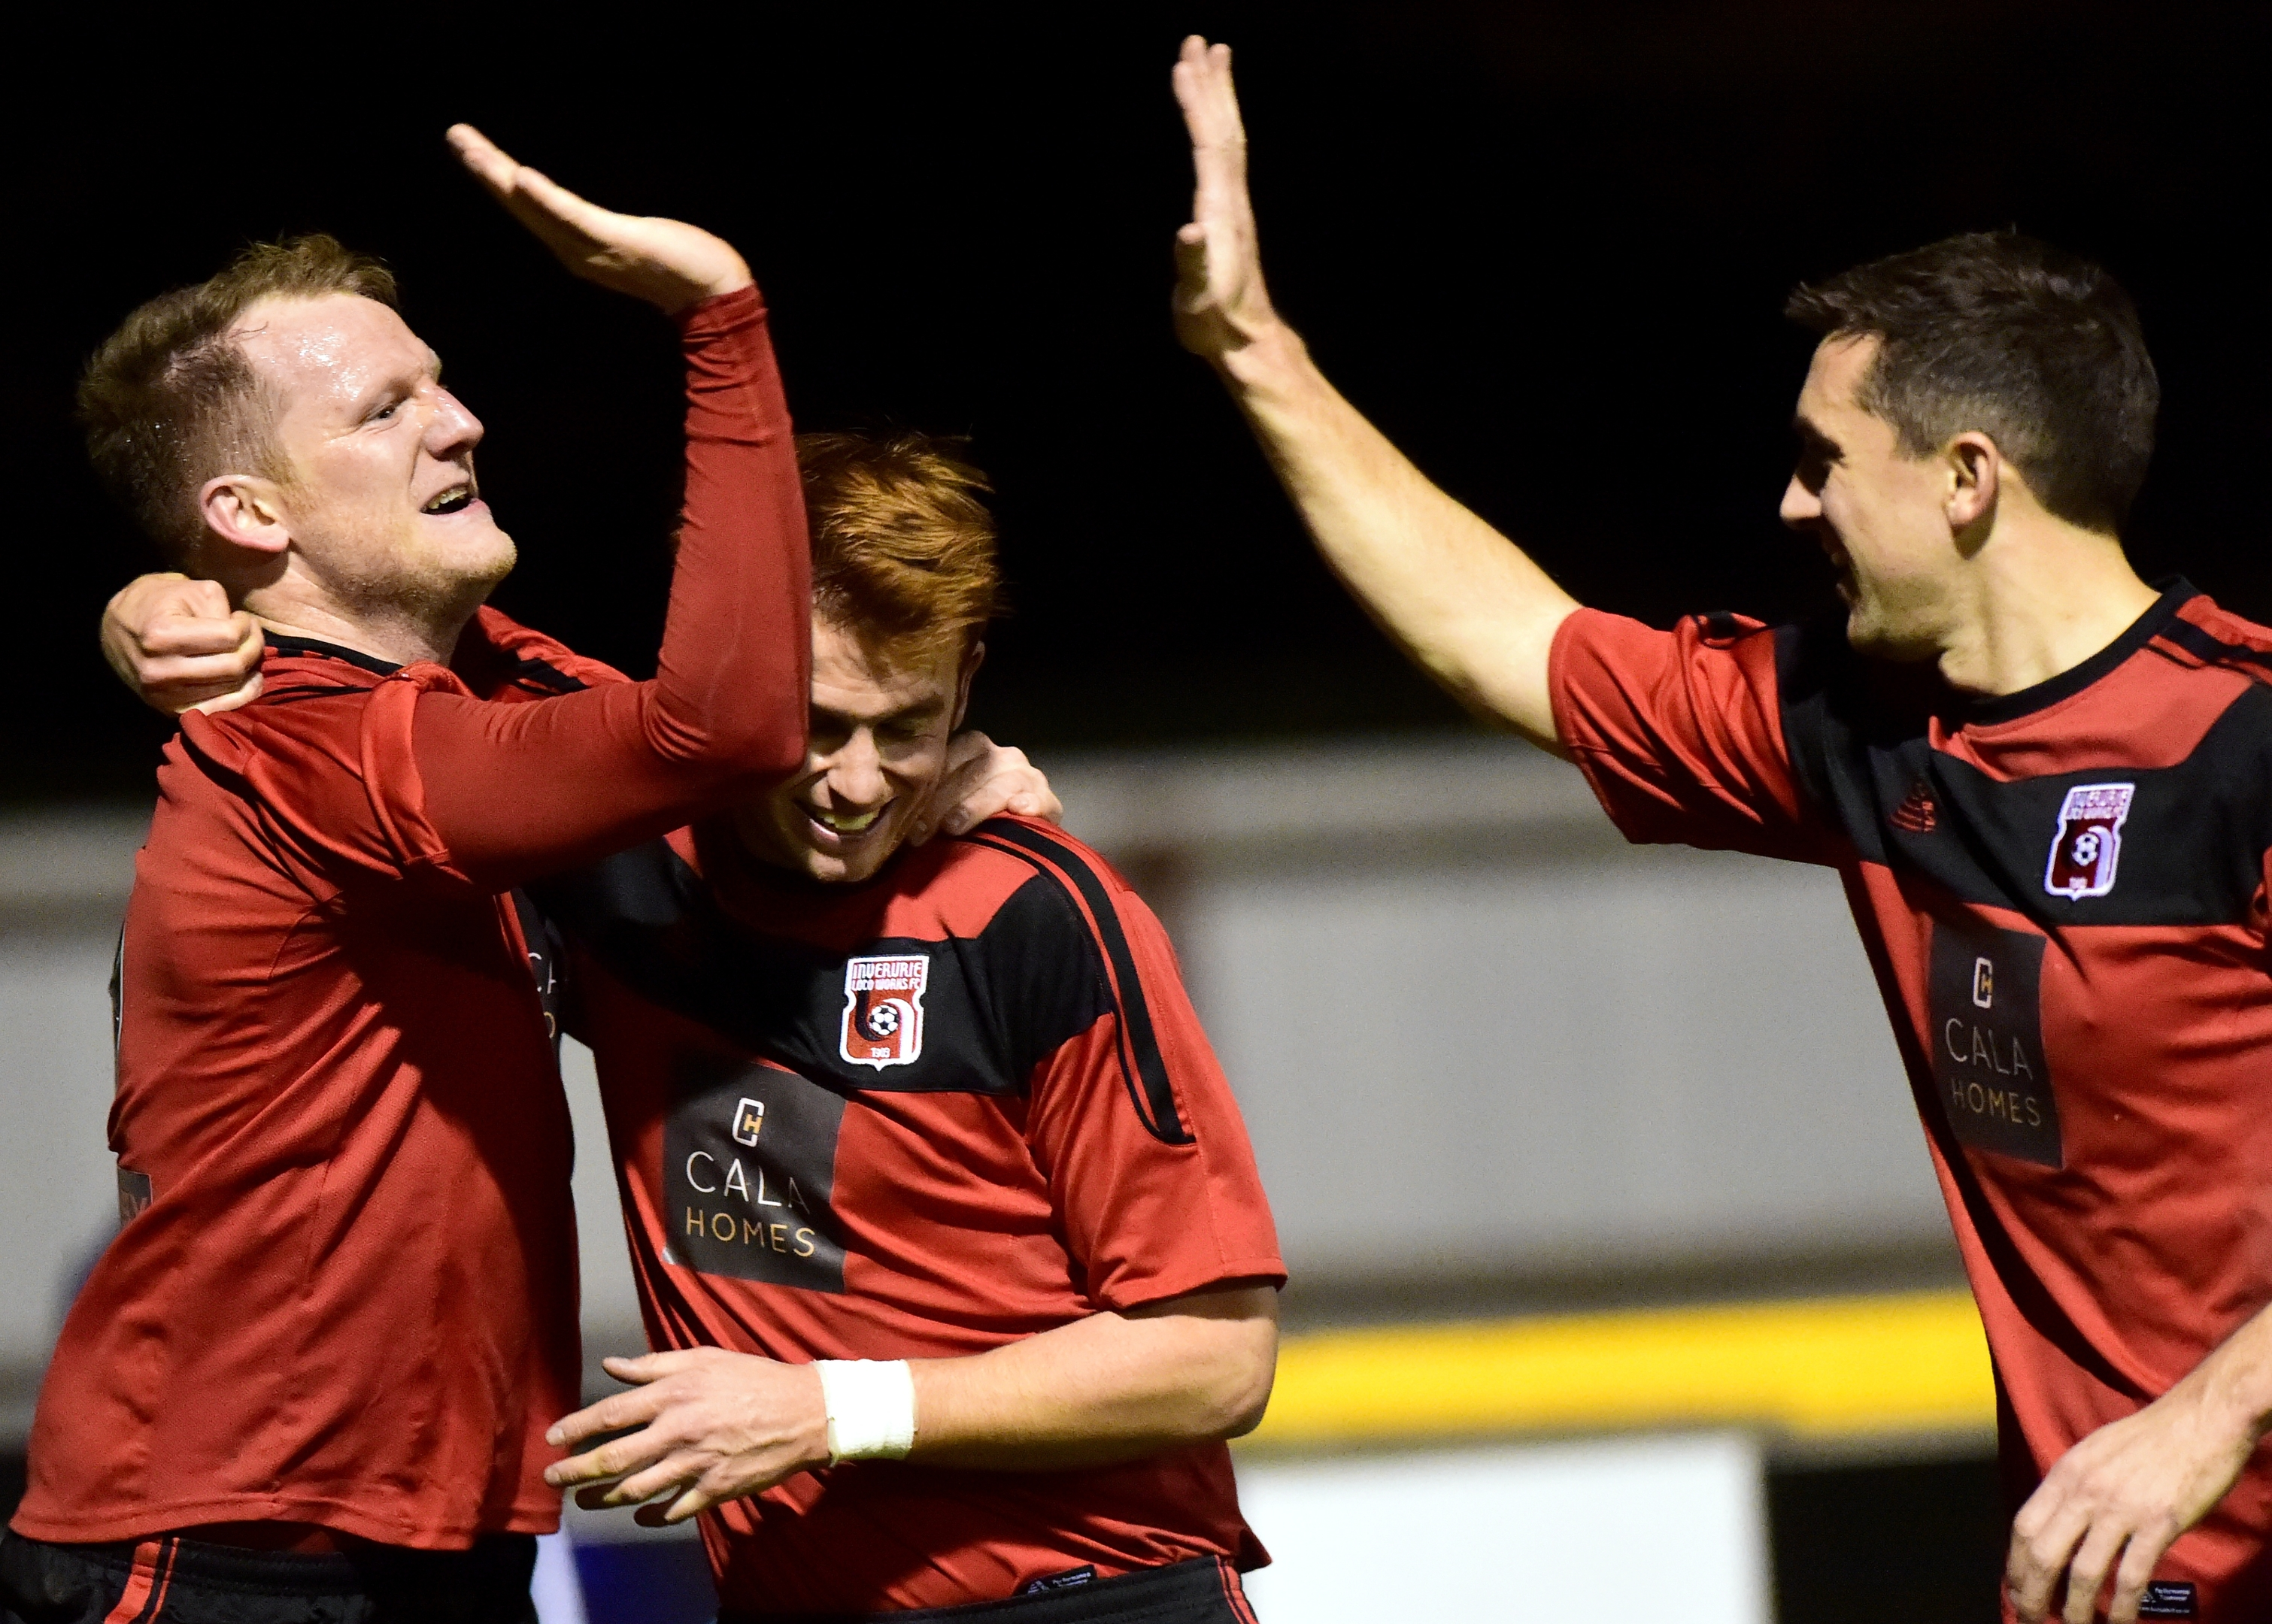 Loco's Ross Anderson (left) celebrates his goal  with Martin Laing and Neil McLean (right).